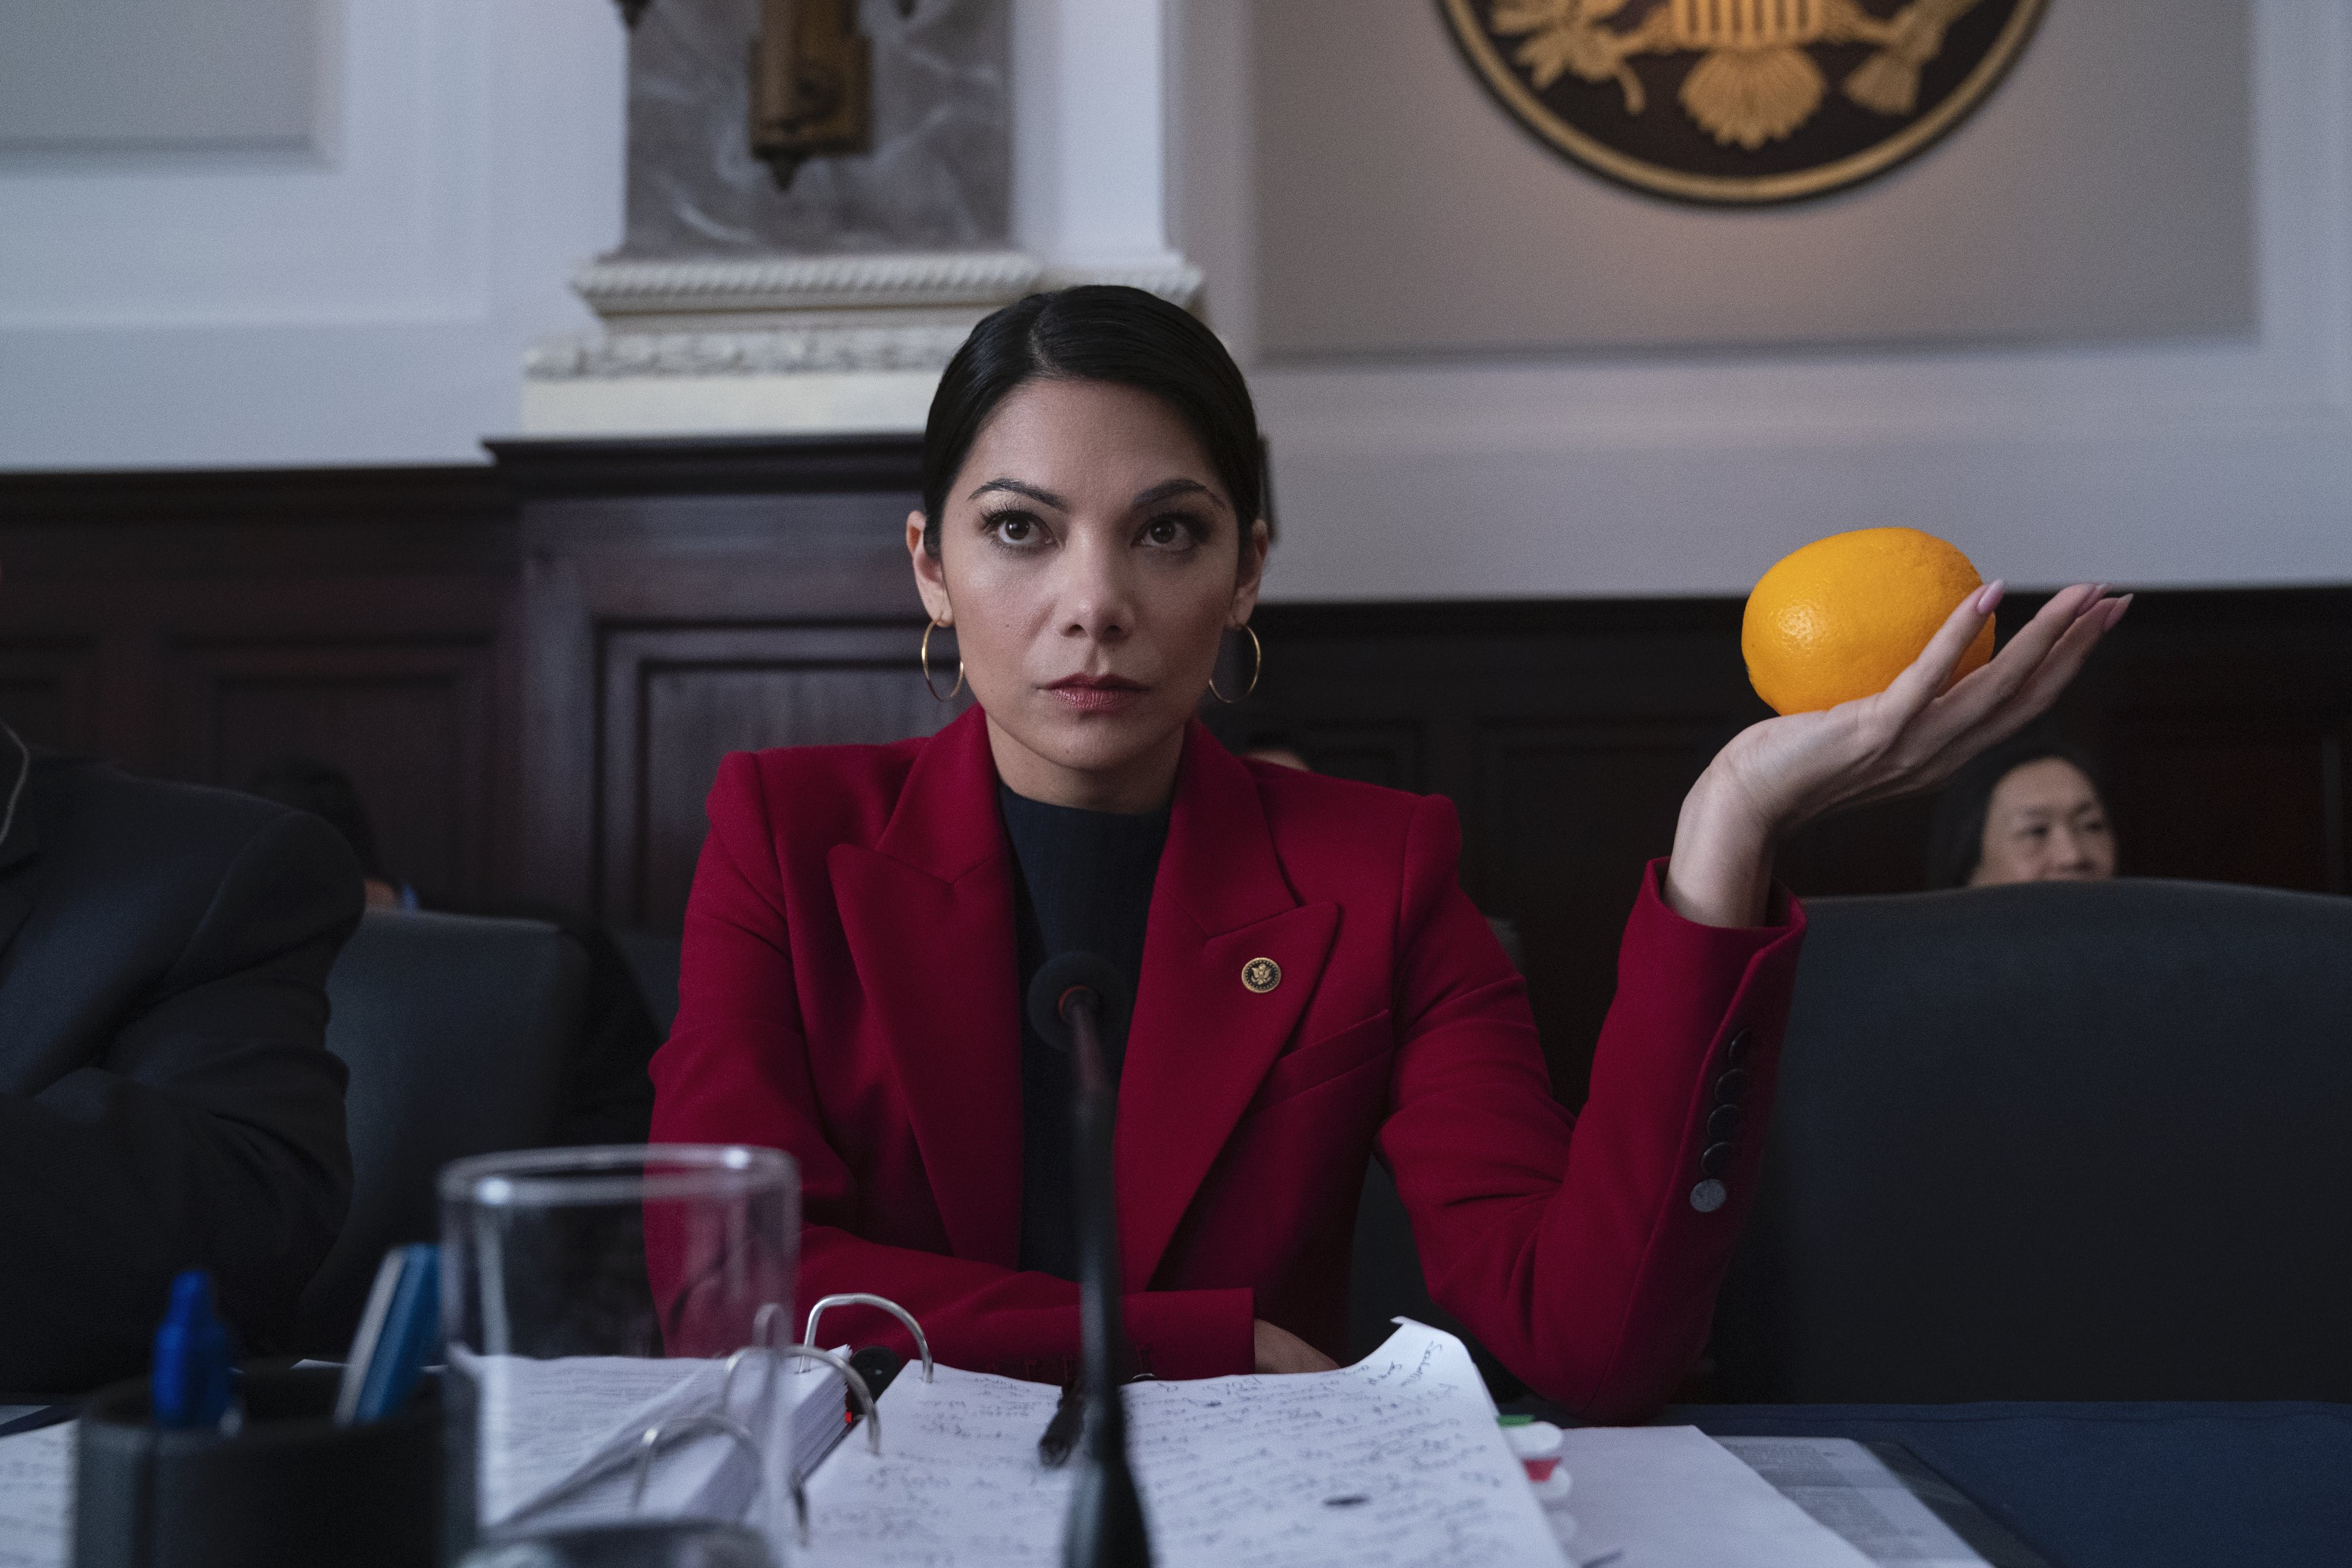 Netflix Comedy 'Space Force' Has Its Own AOC Character Calling out Government Spending